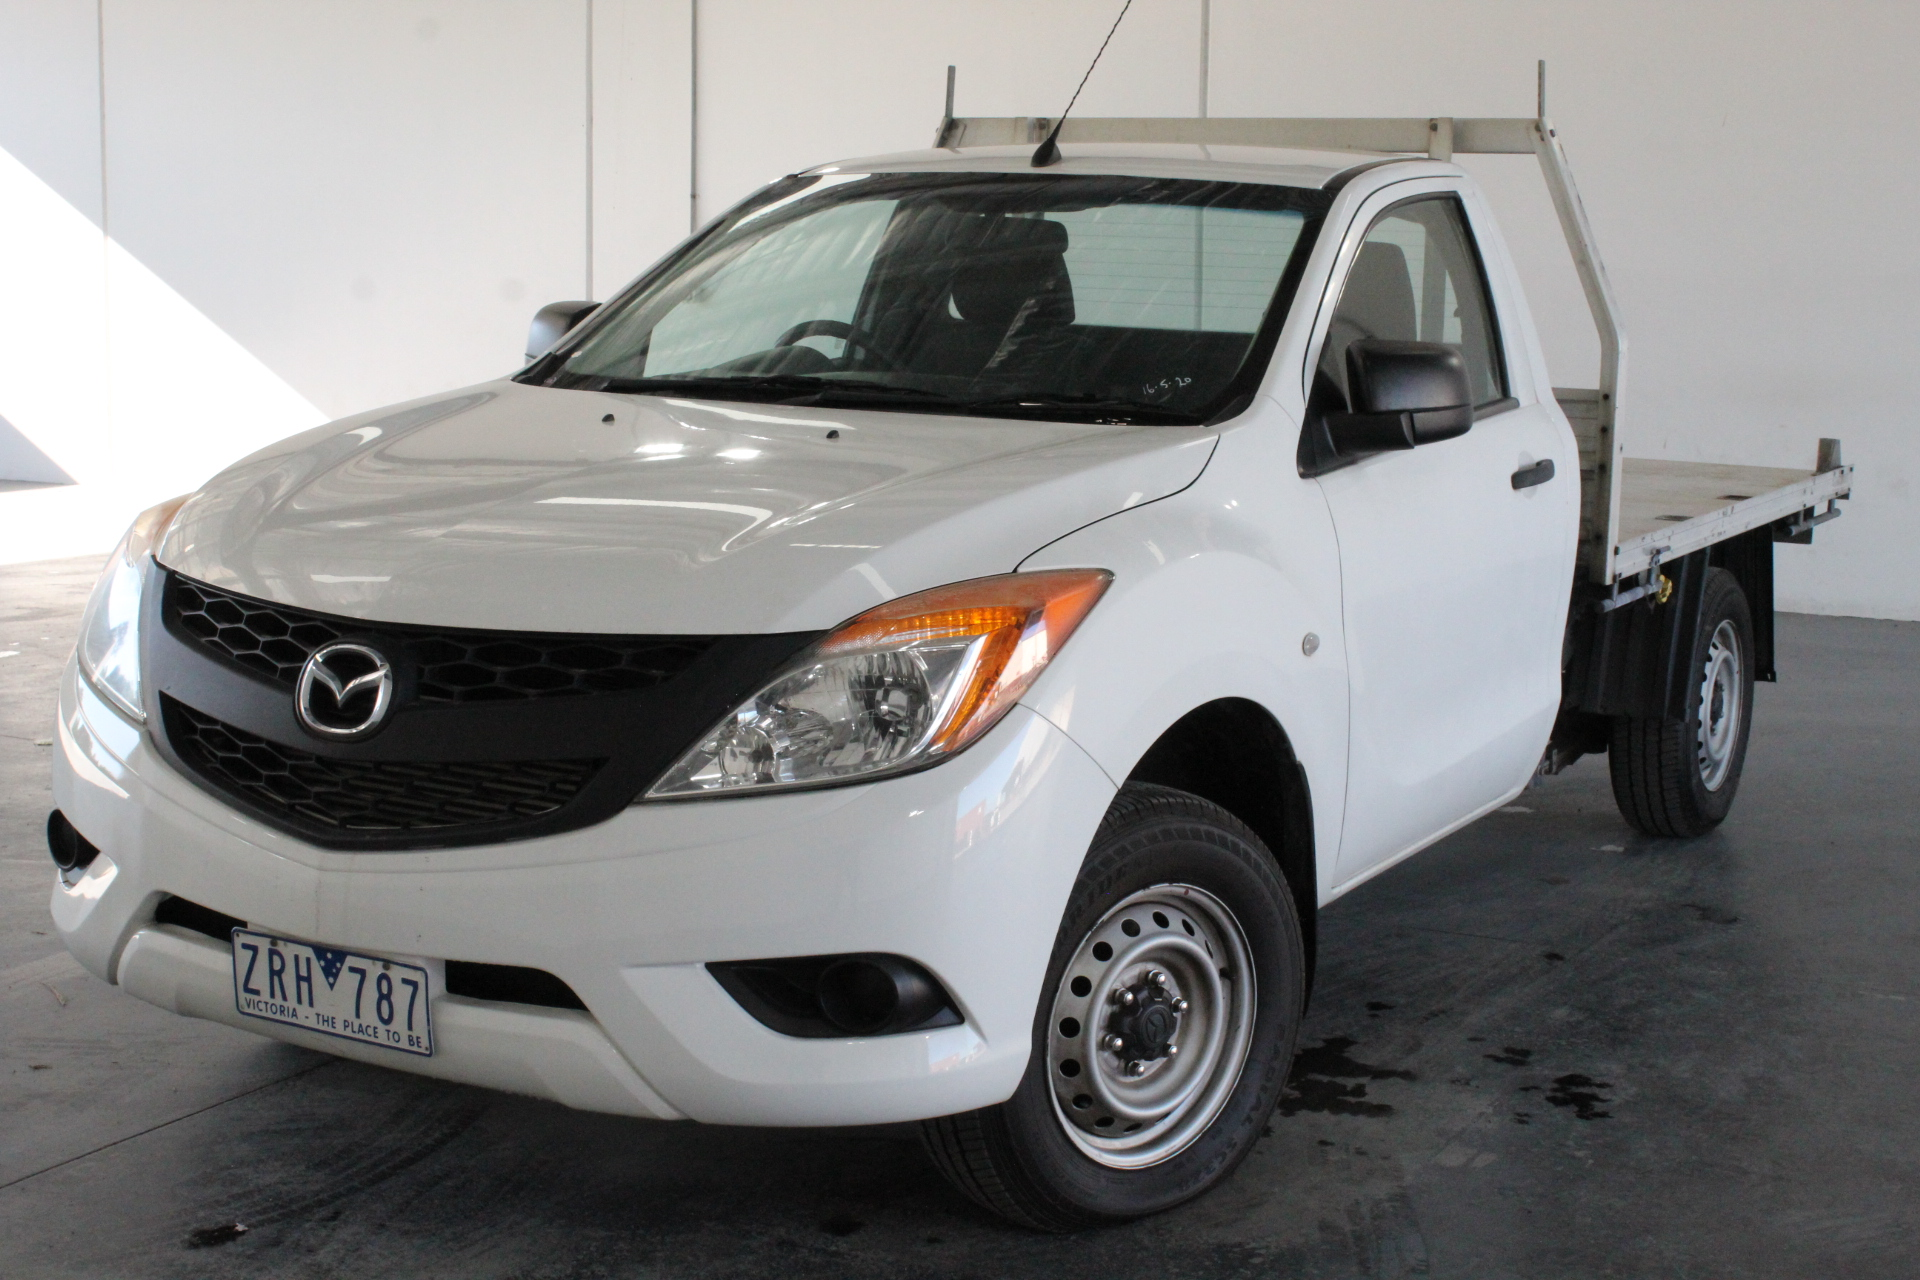 2013 Mazda BT-50 4X2 XT Turbo Diesel Manual Cab Chassis